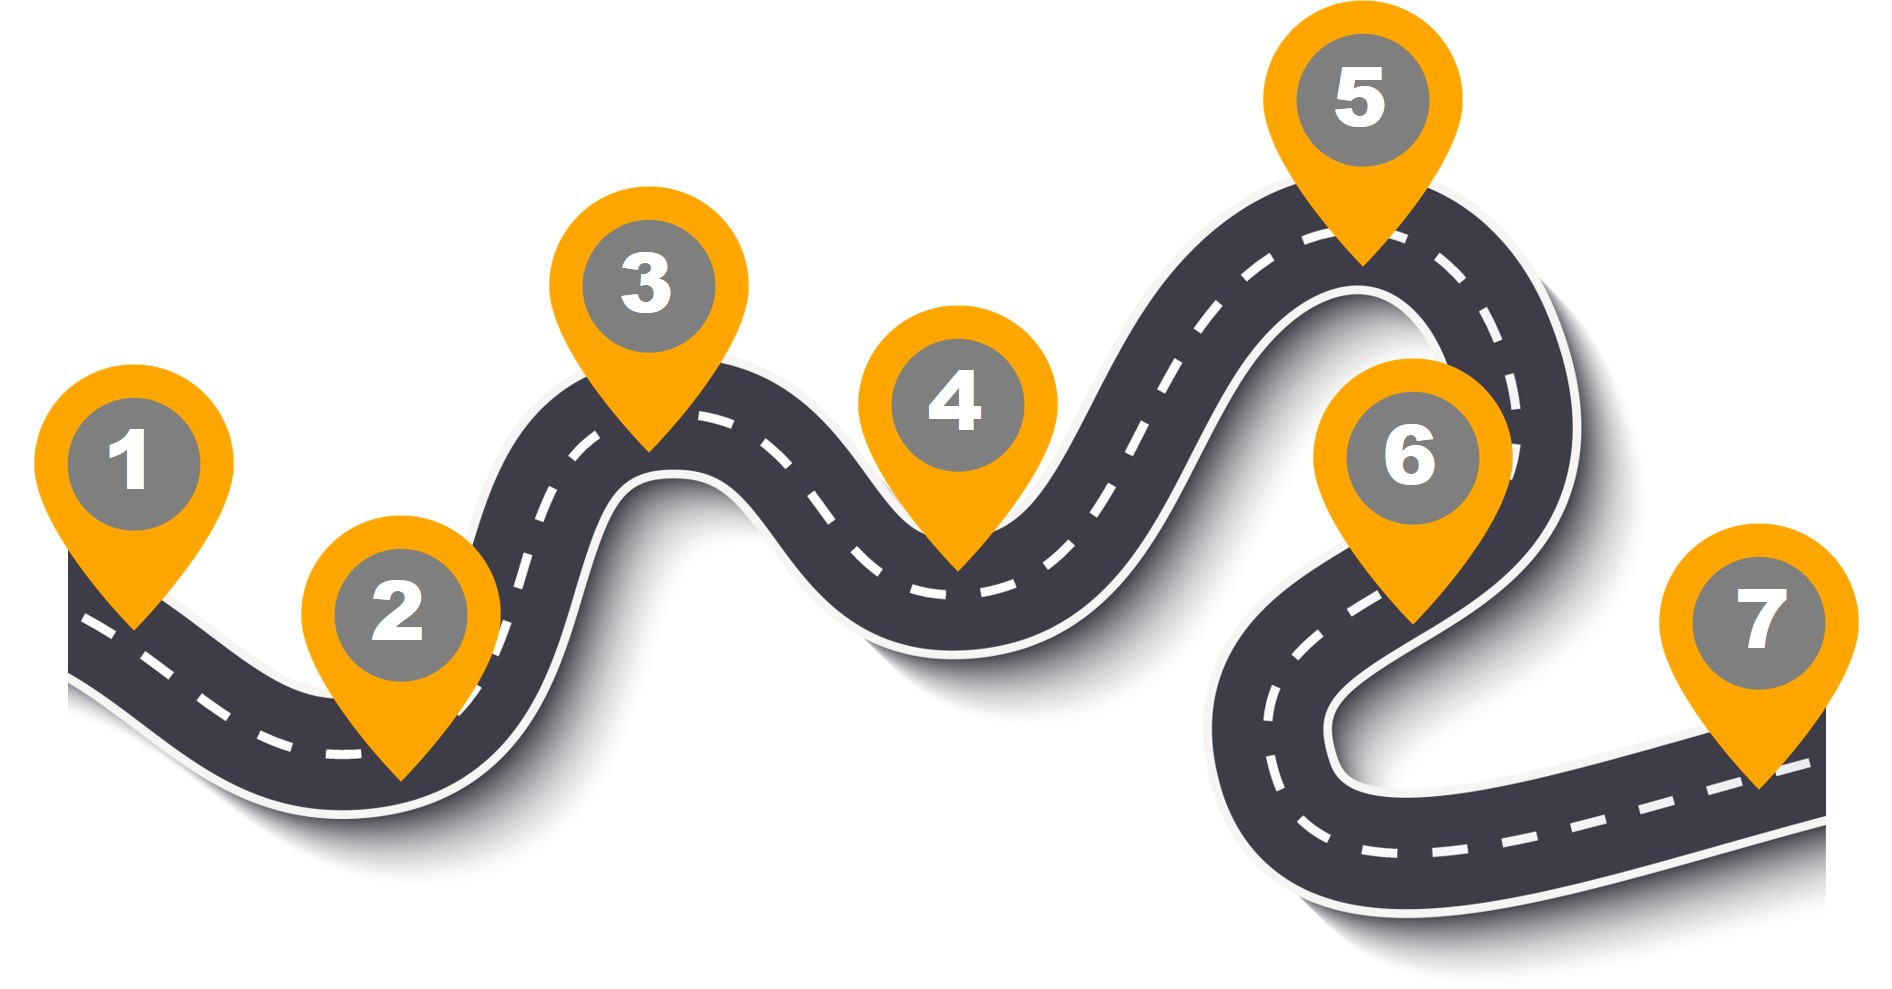 a winding road illustrates the journey to a better website with map points 1 through 7 along the way